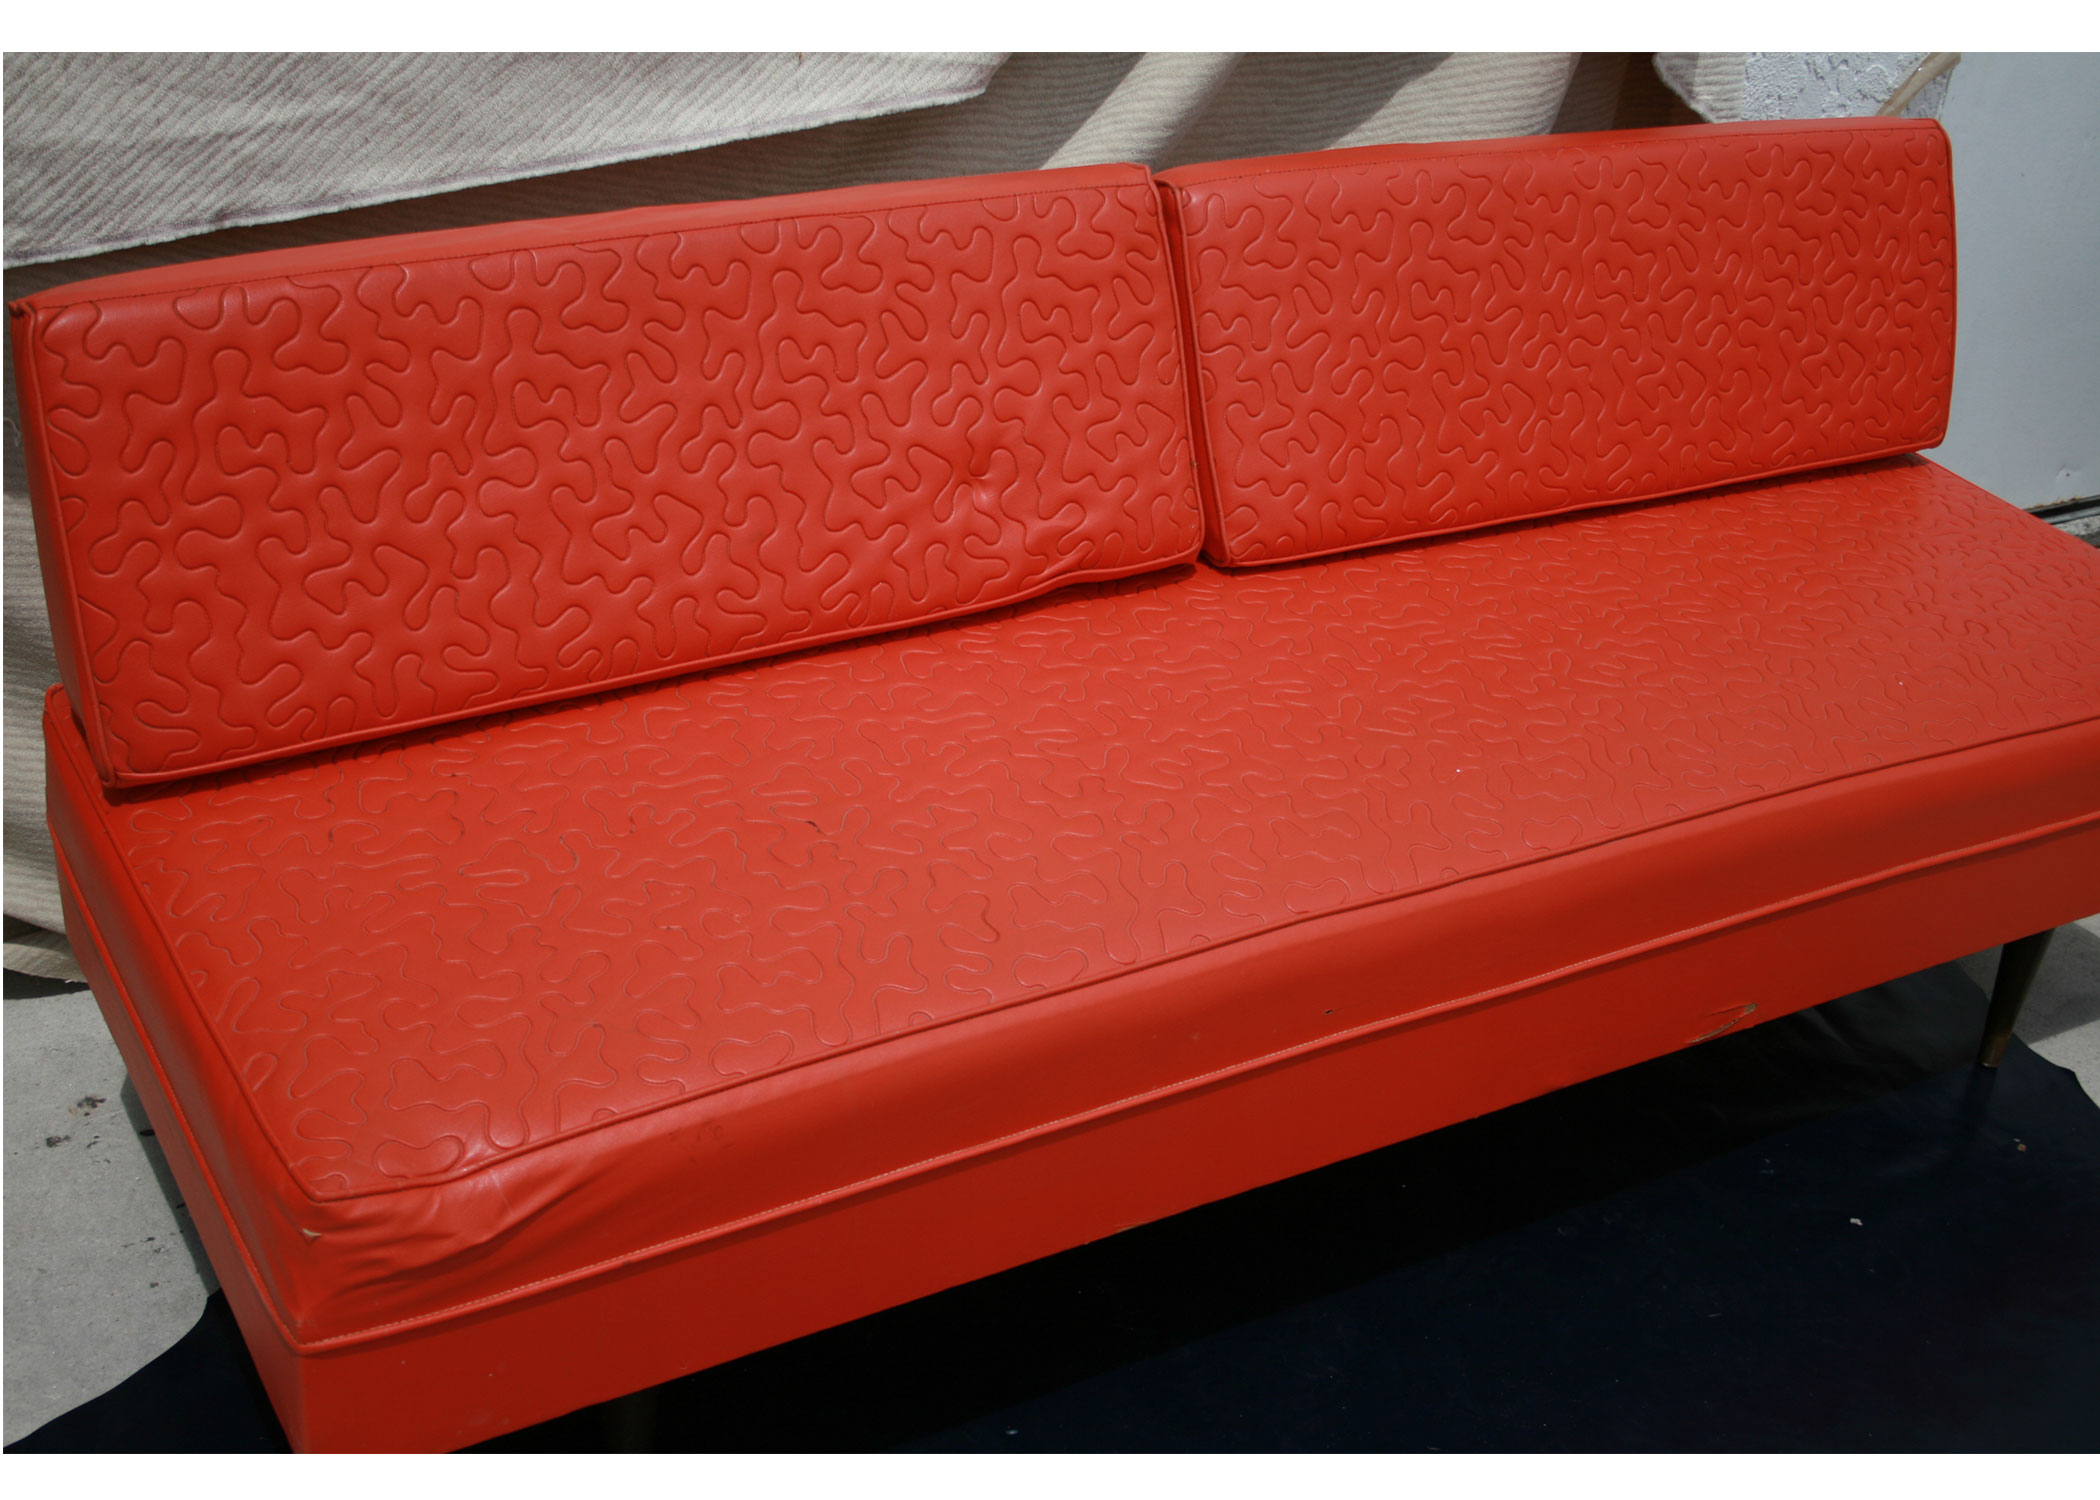 tangerine sofa jane sofair psychiatrist vintage leather oragne day bed on antique